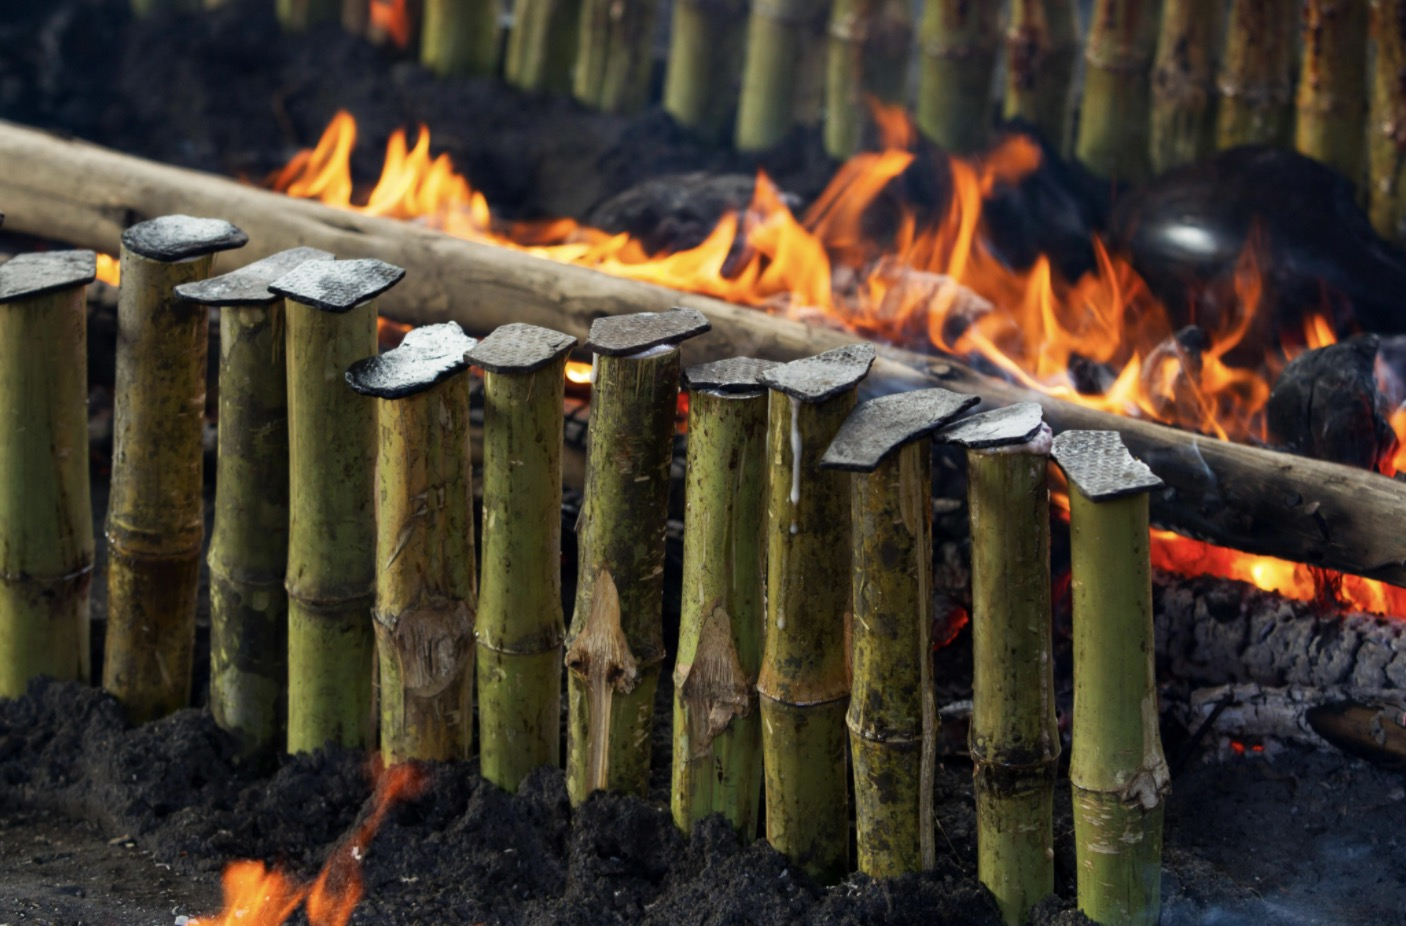 How to make bamboo charcoal at home